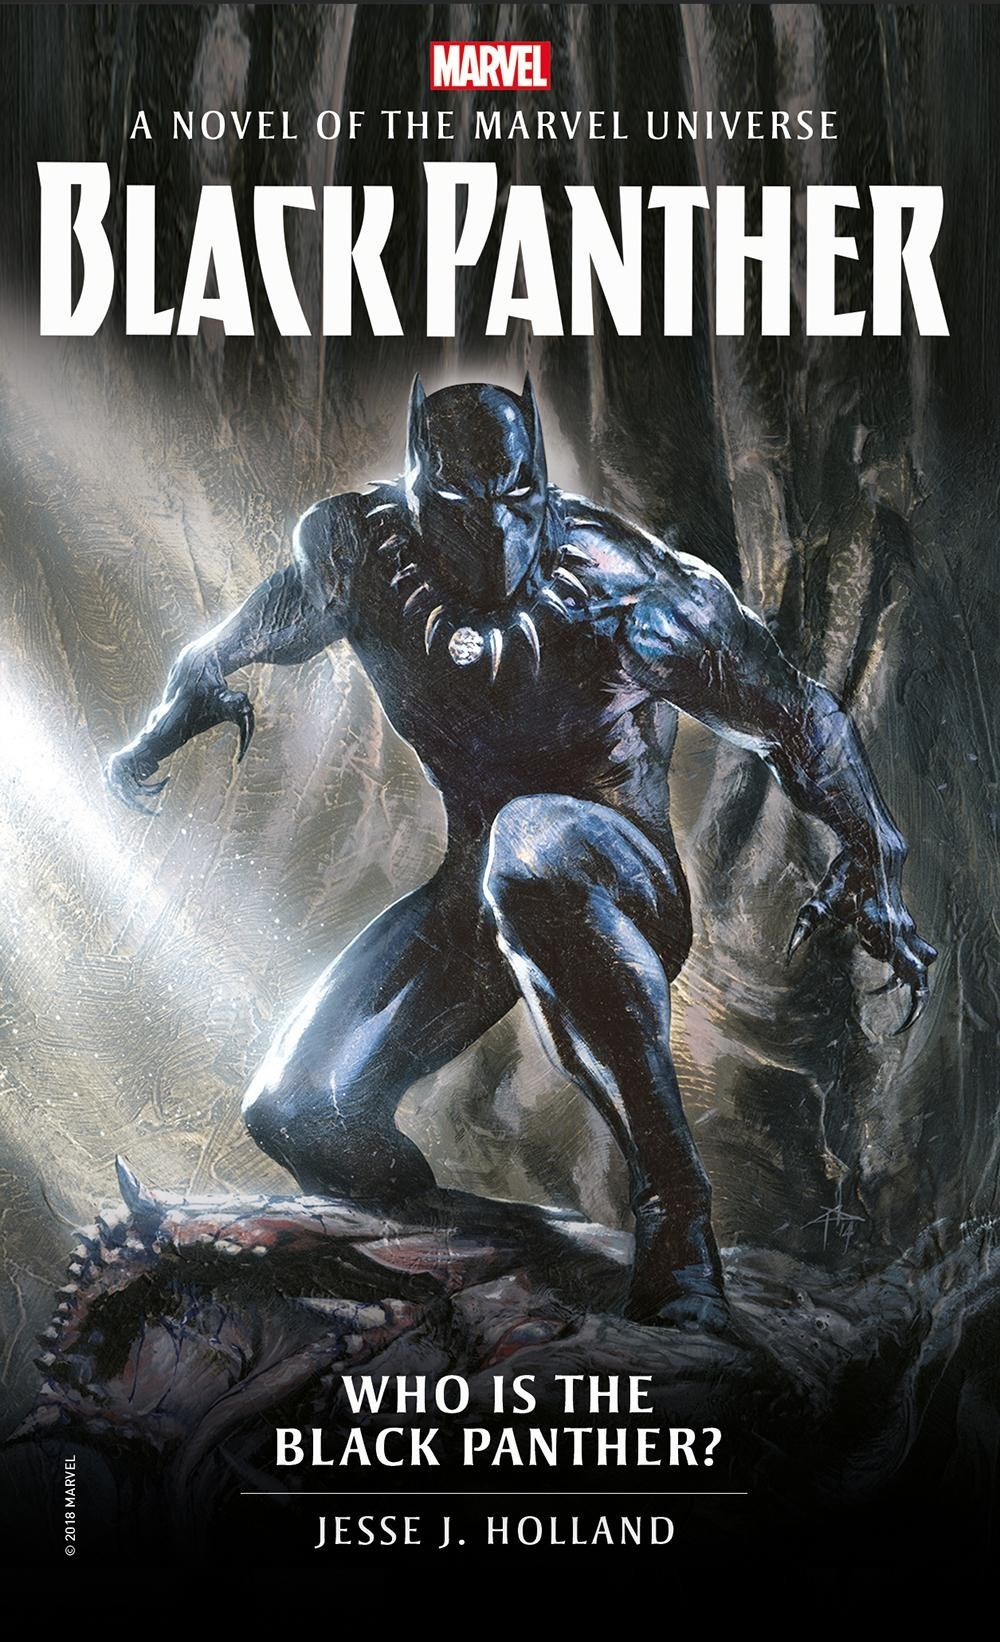 black panther cover.jpg